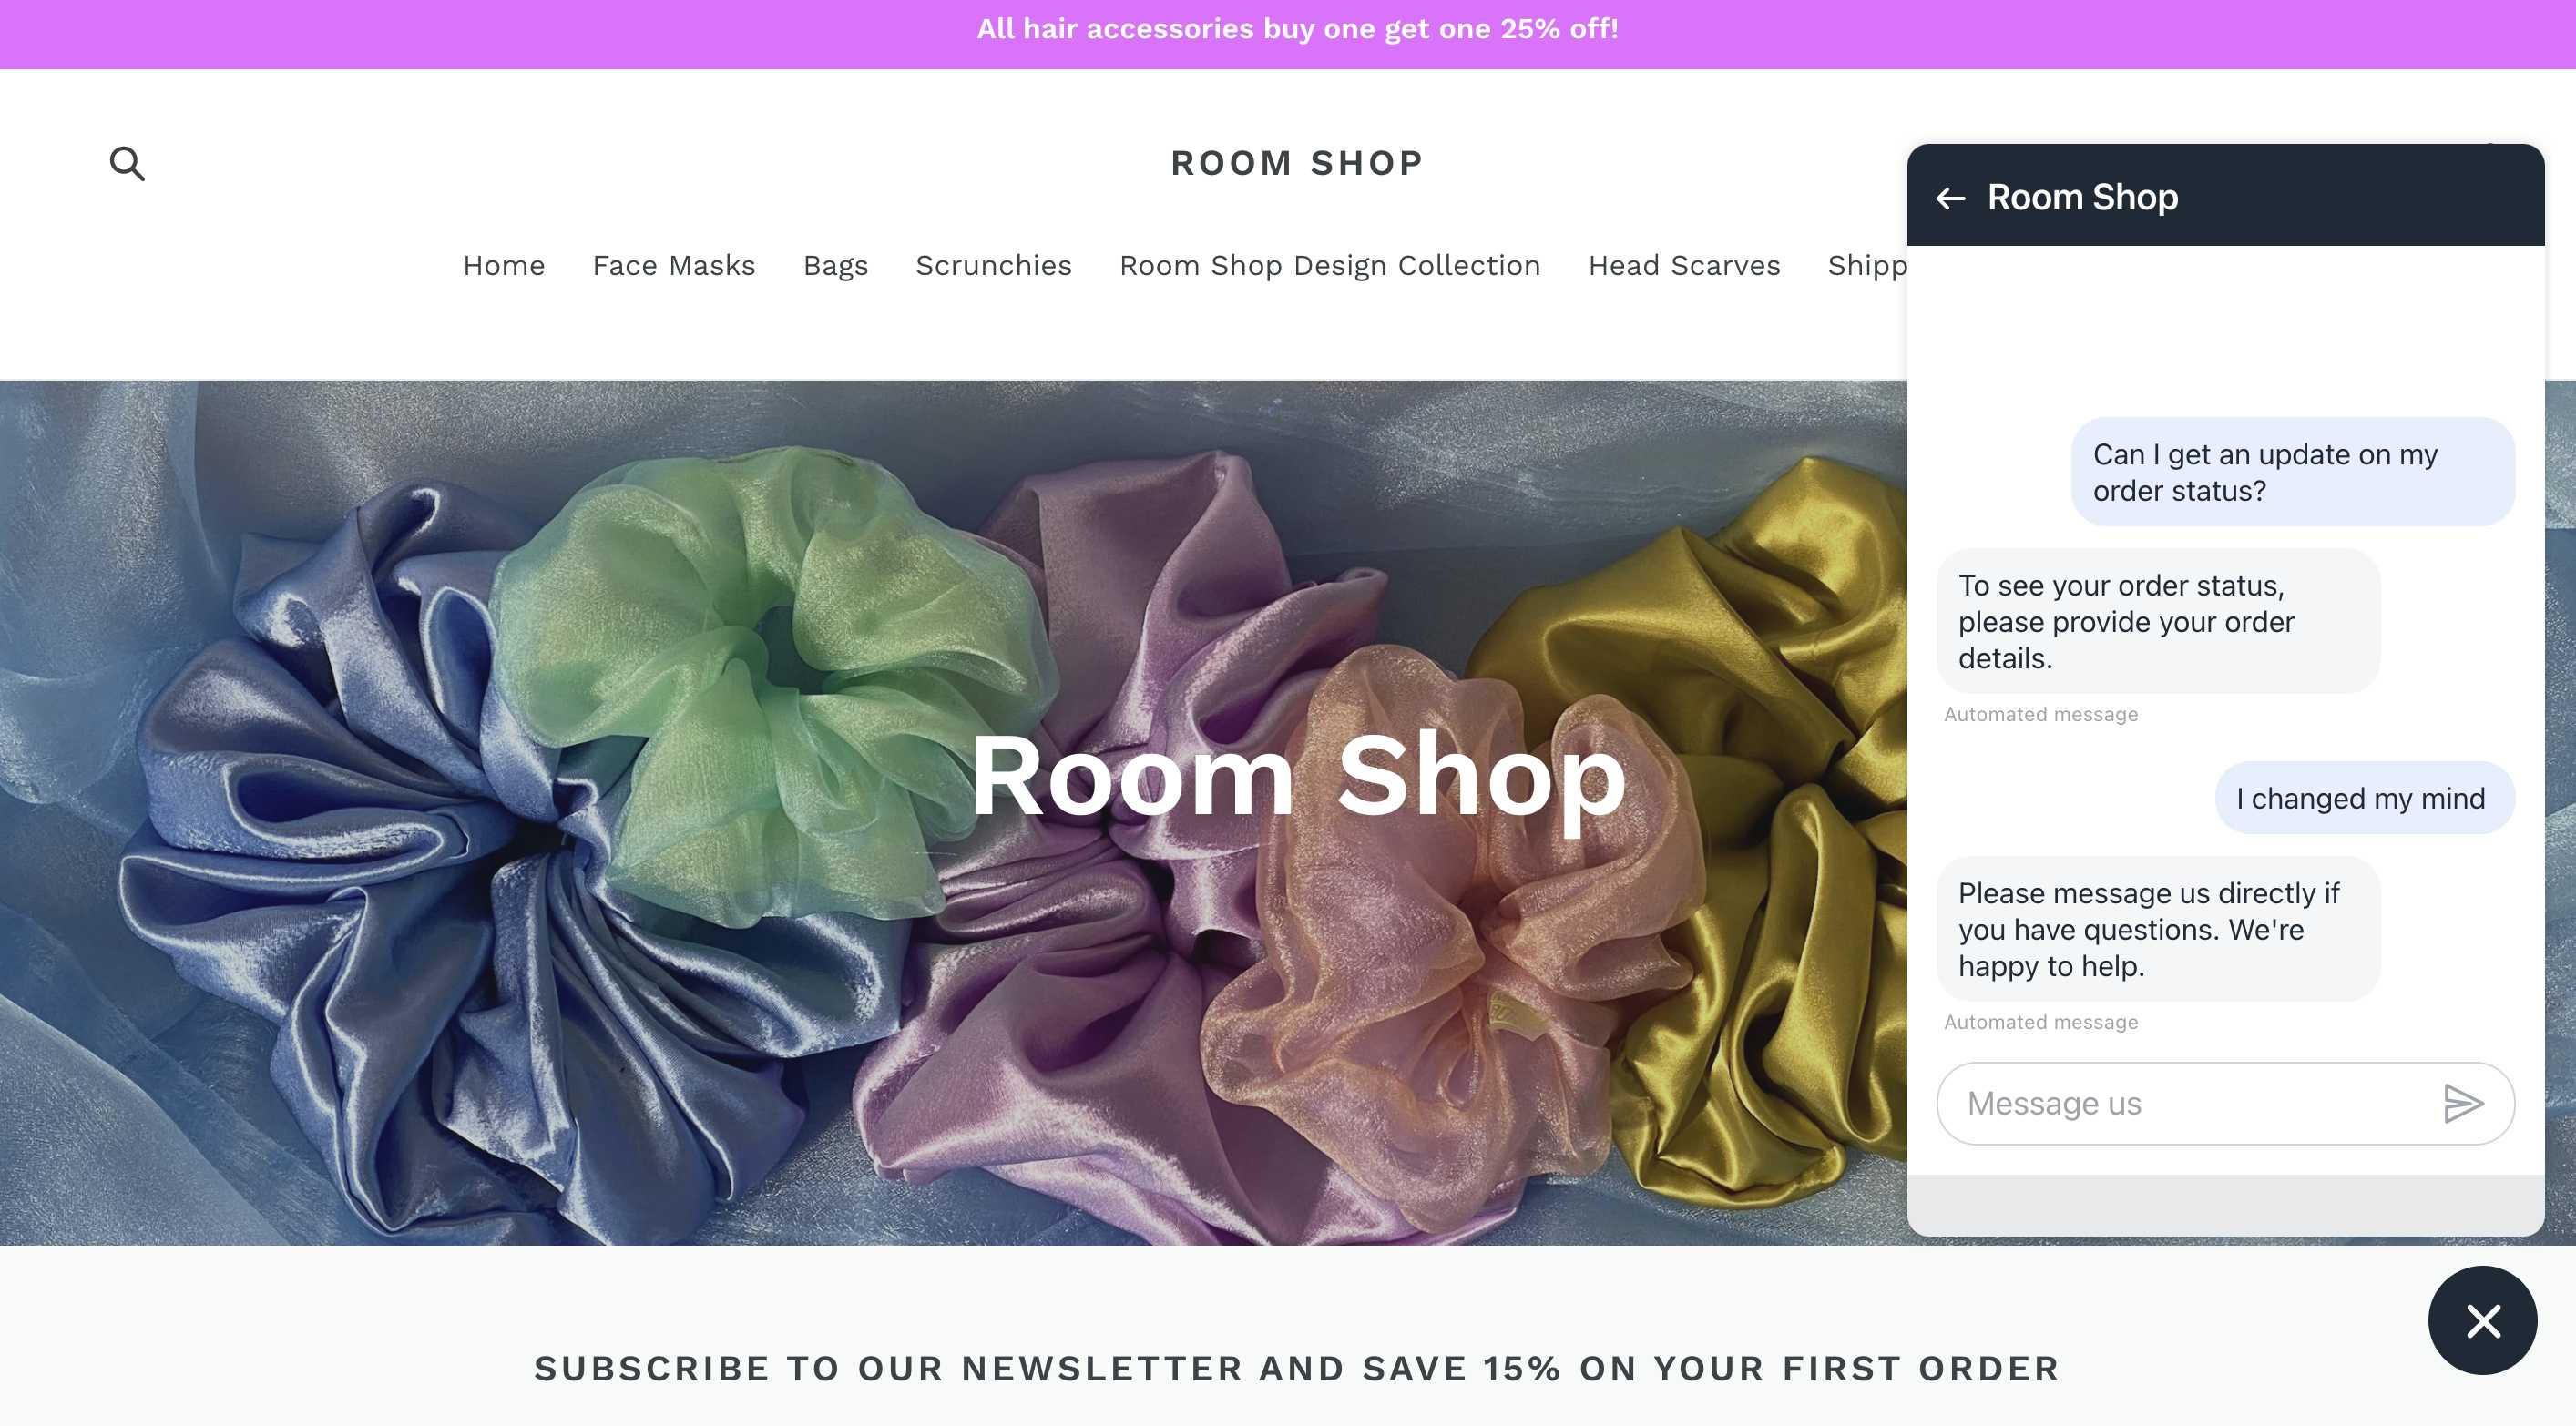 room shop used shopify inbox website conversion rate